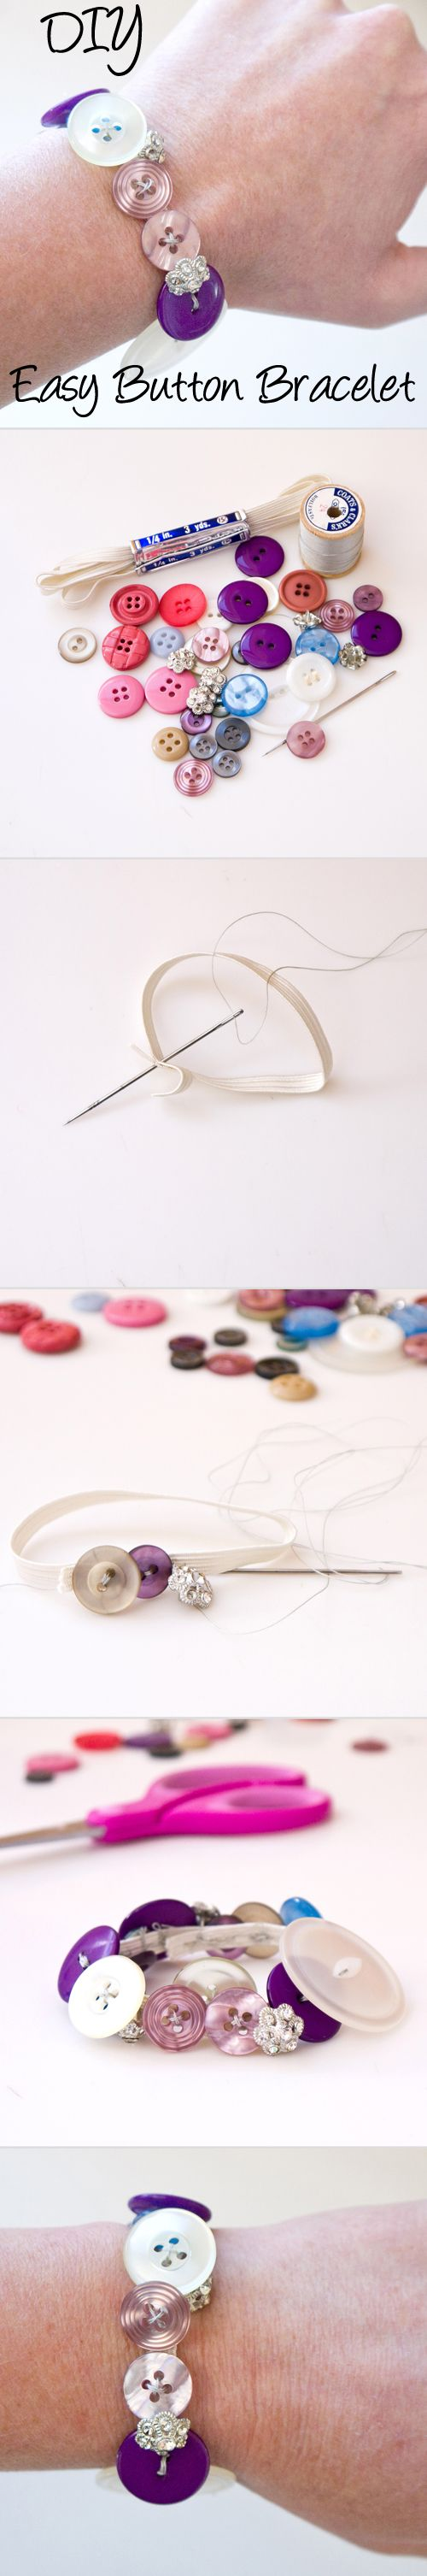 This fun DIY makes a great last-minute gift or a project with young daughters and nieces. (NANA's button collection!)